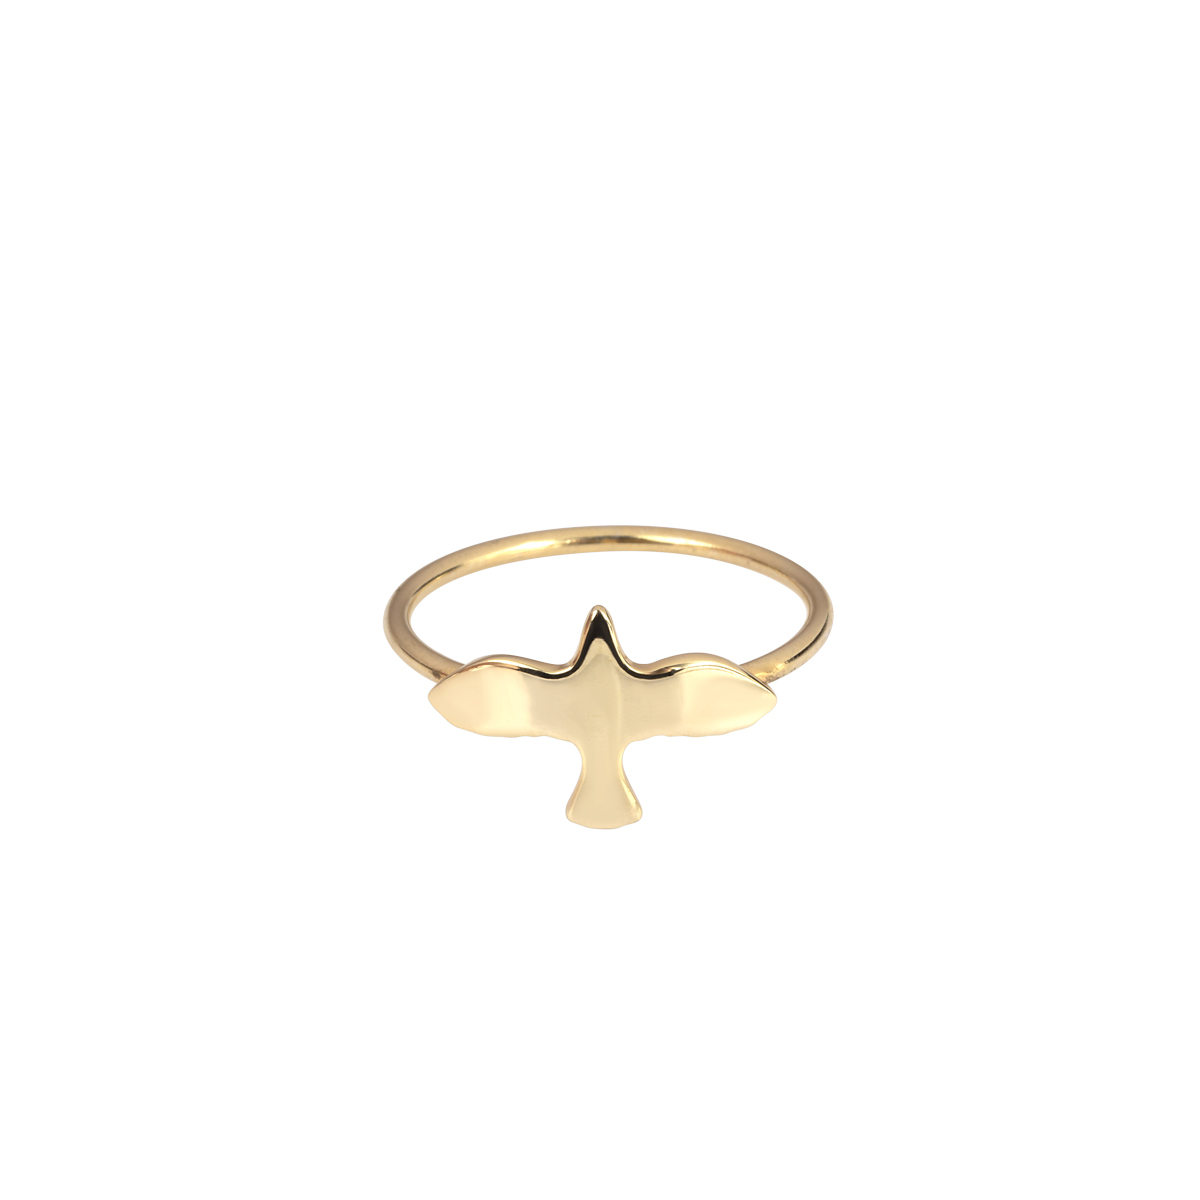 Golden Dove Ring in the group RINGS at EMMA ISRAELSSON (ring081)